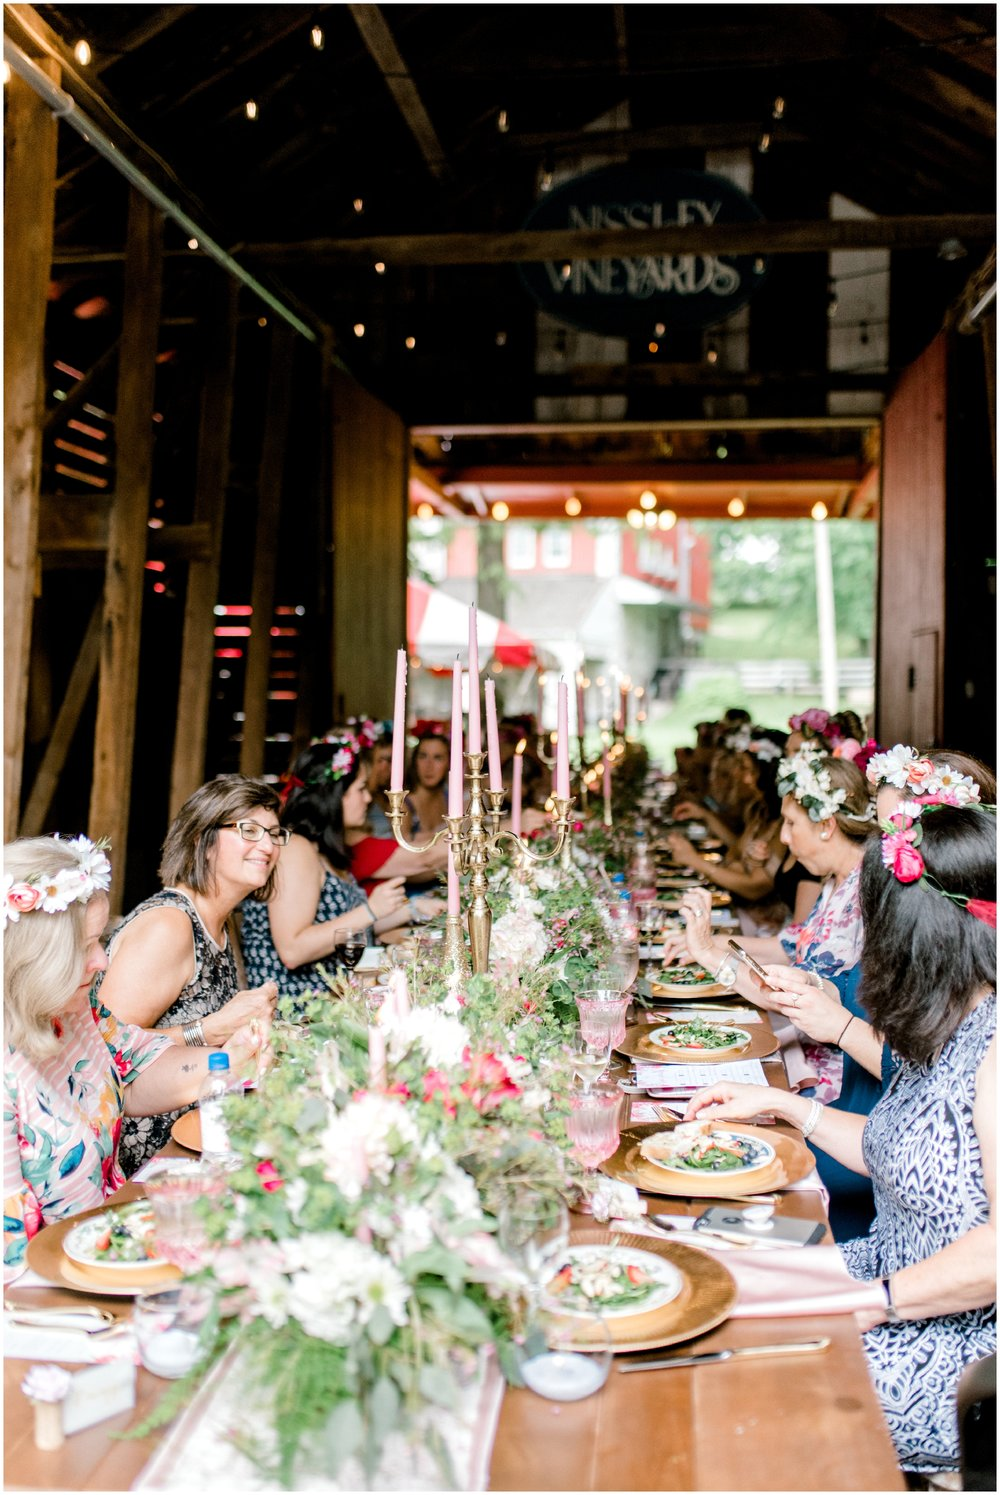 Spring Winery Bridal Shower at Nissley Vineyards in Lancaster County, PA - Krista Brackin Photography_0060.jpg